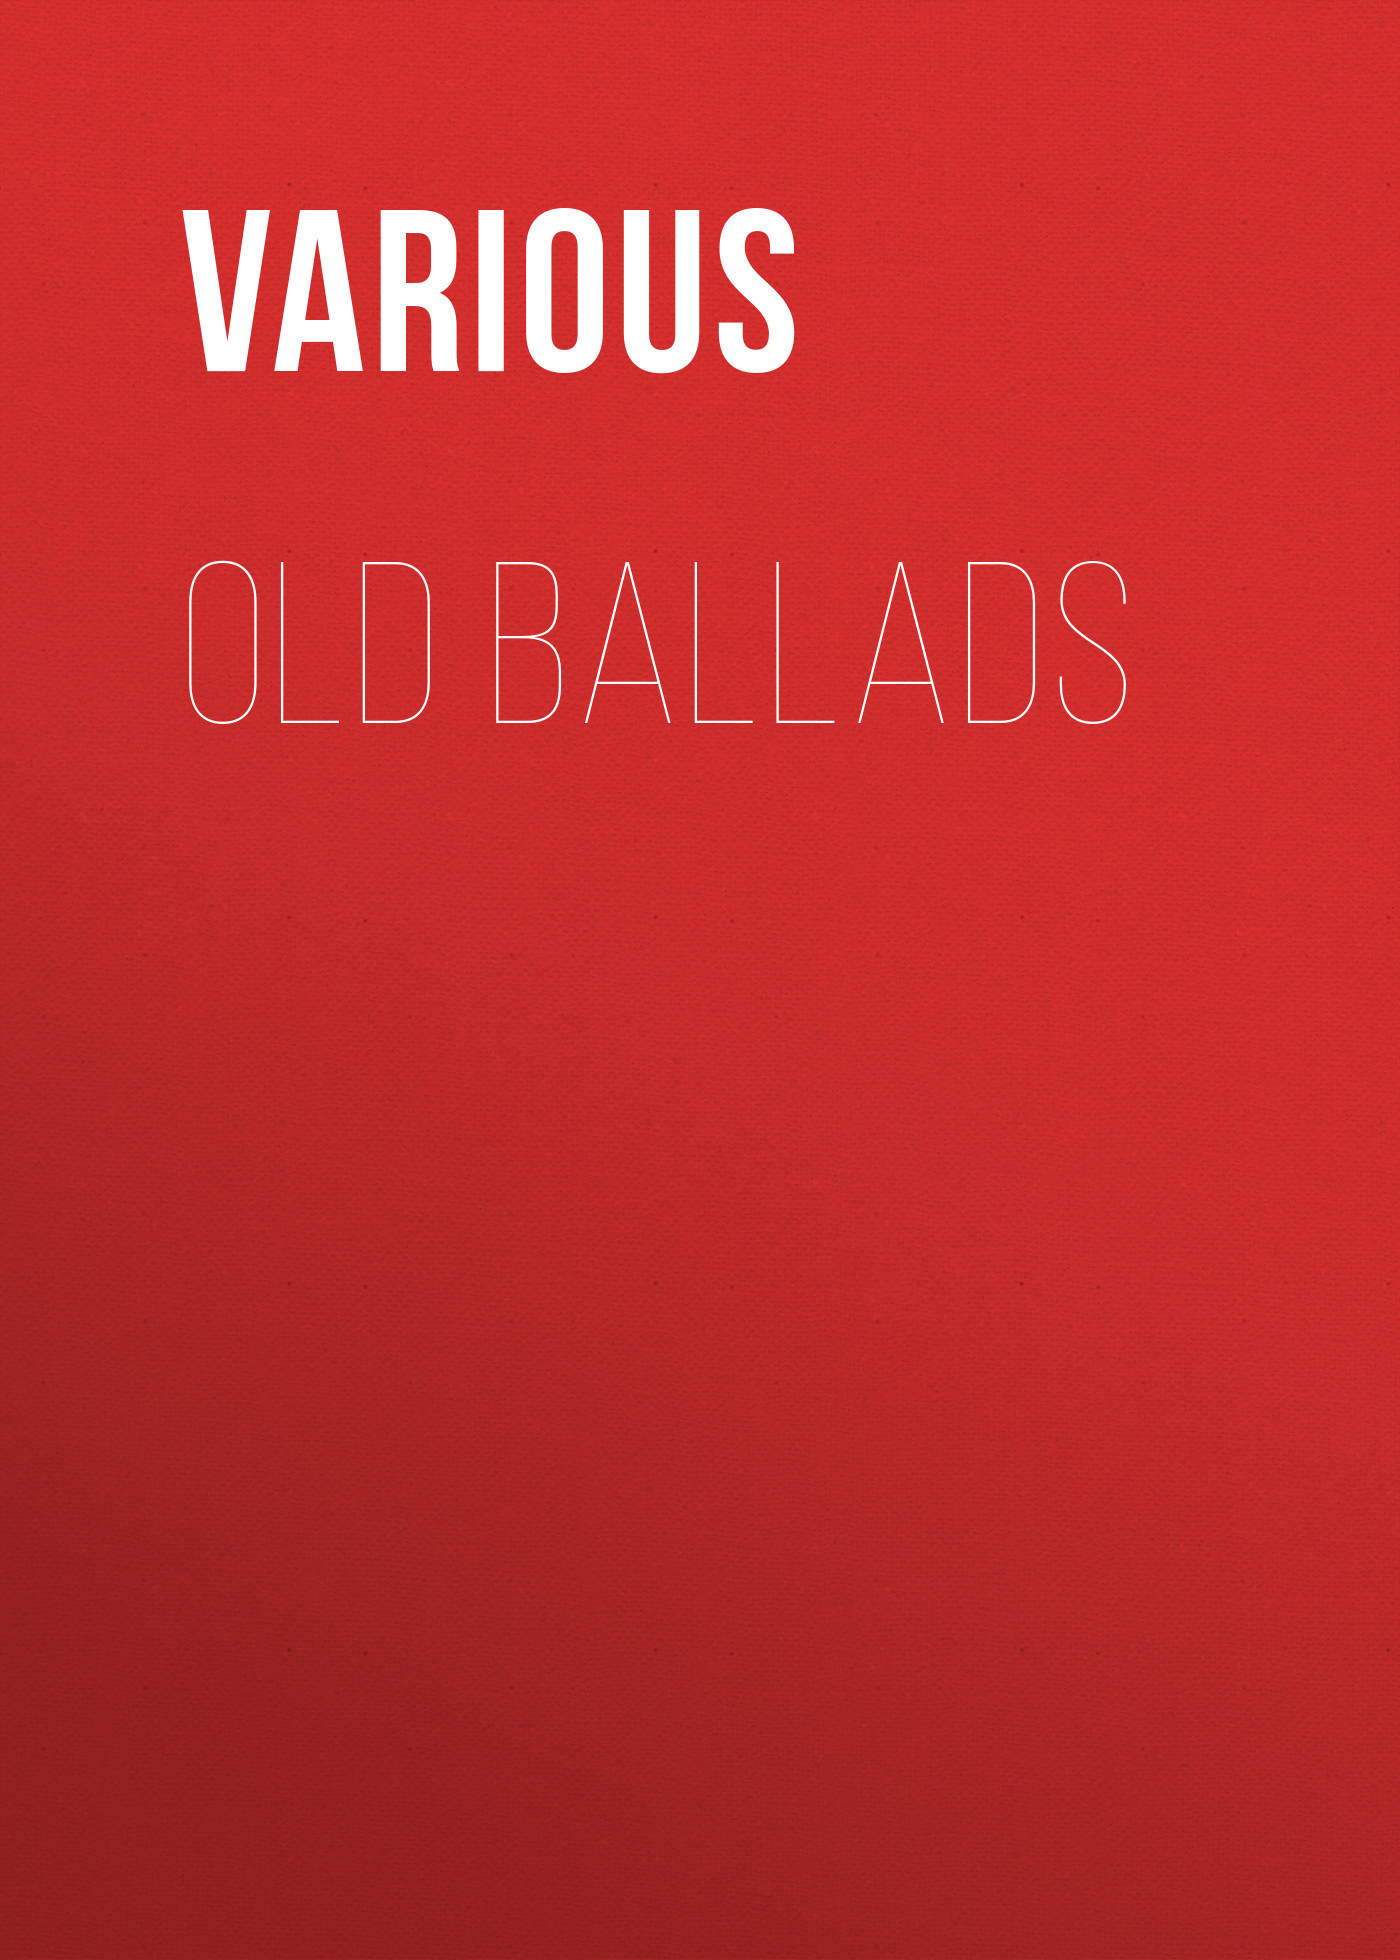 Various Old Ballads